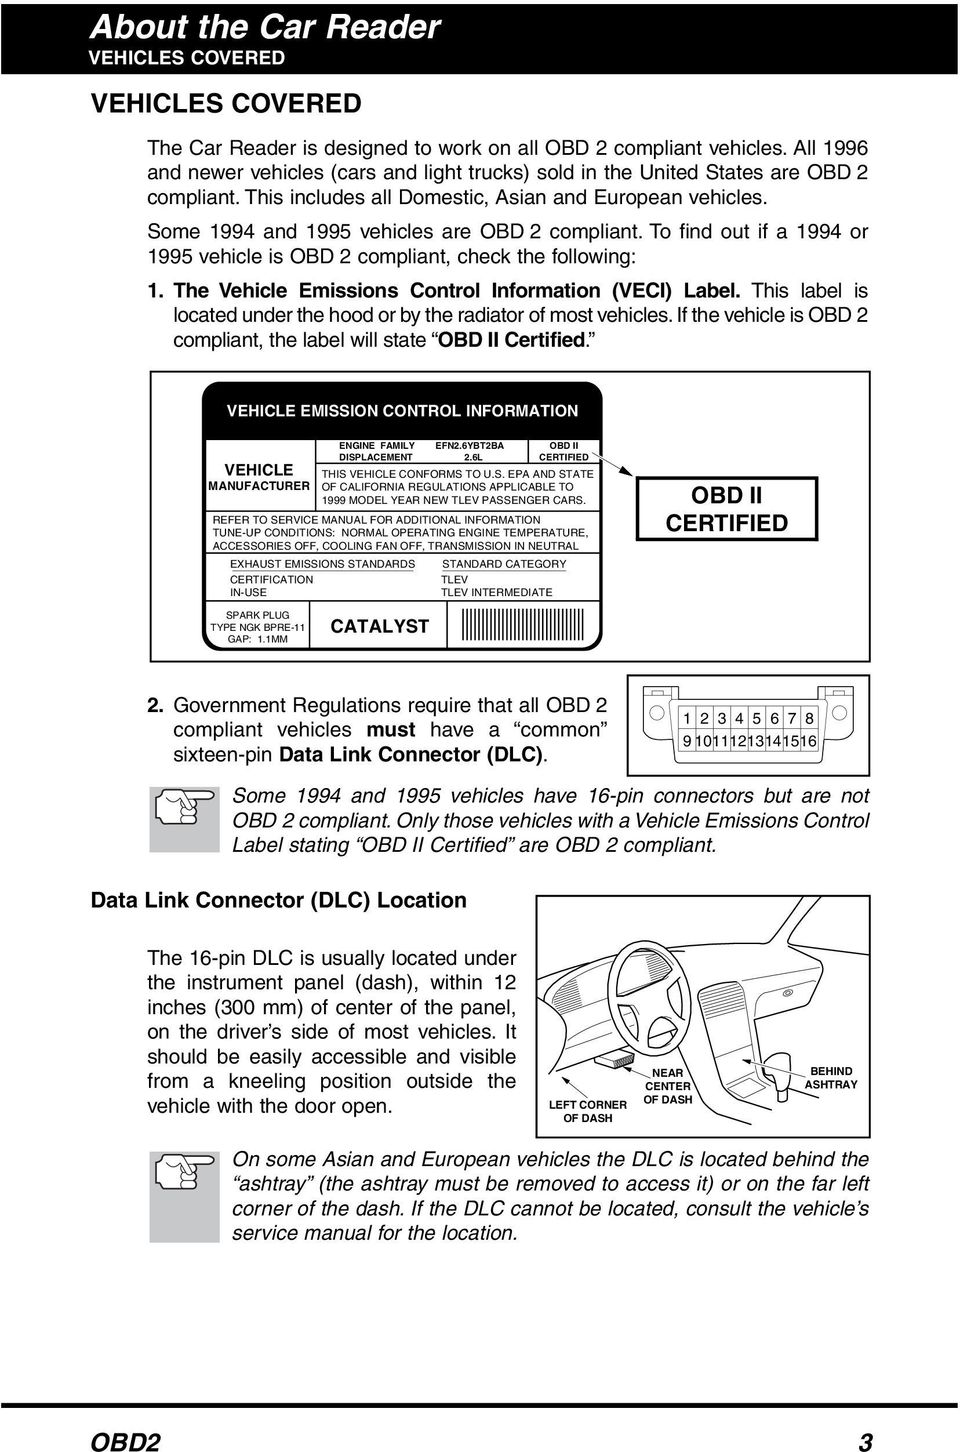 You Can Do It Safety Precautions First Pdf Location Of Ignition Coil B Primary Secondary Circuit Malfunction Some 1994 And 1995 Vehicles Are Obd 2 Compliant To Find Out If A